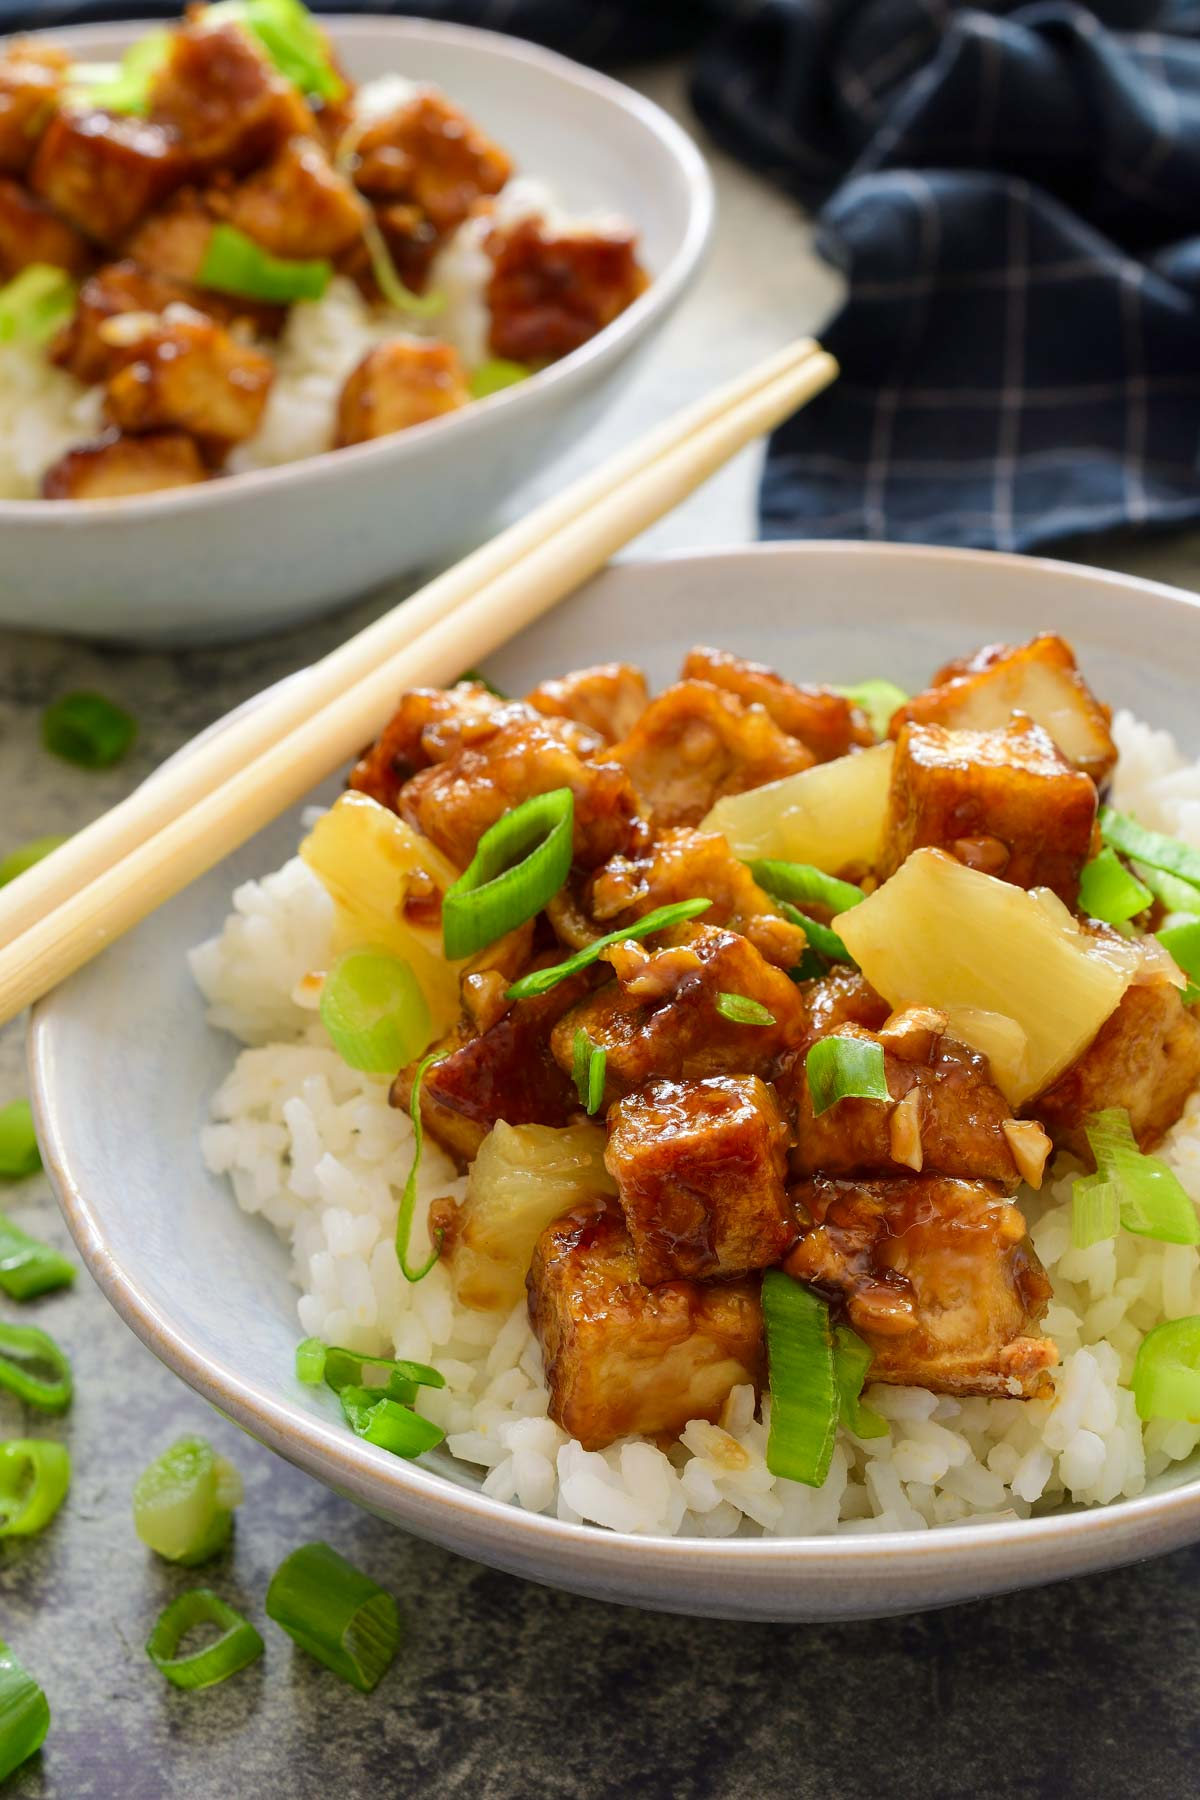 A white bowl of teriyaki tofu with pineapple over rice. Two chopsticks on the side of the bowl.